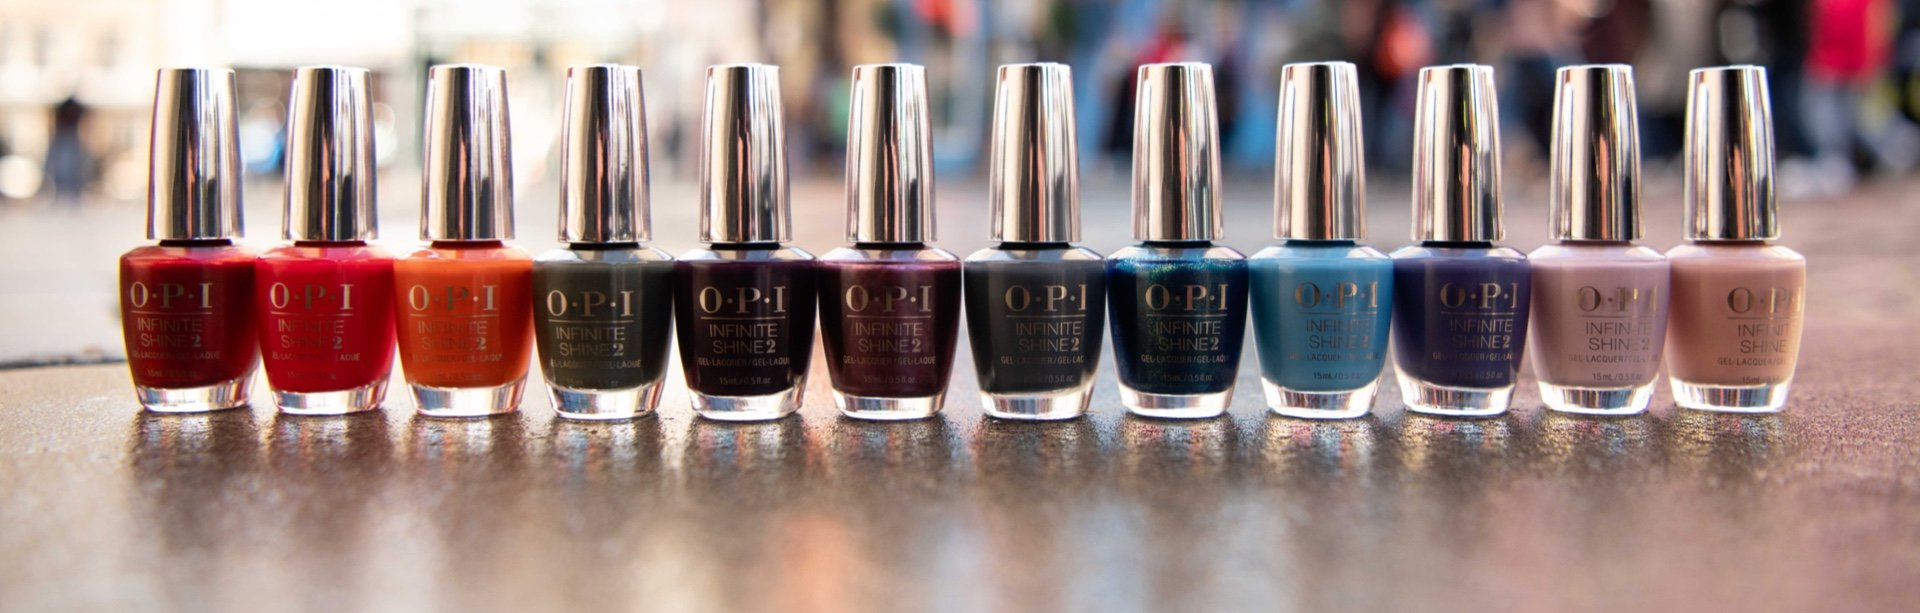 Browse the shades available in OPI Infinite Shine